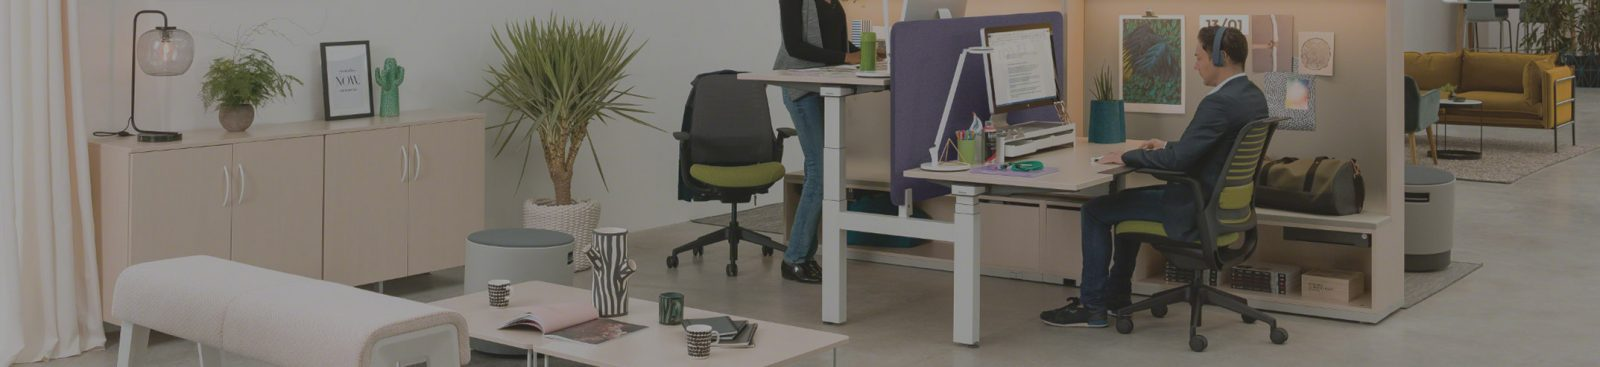 How to limit clutter in an open plan office image